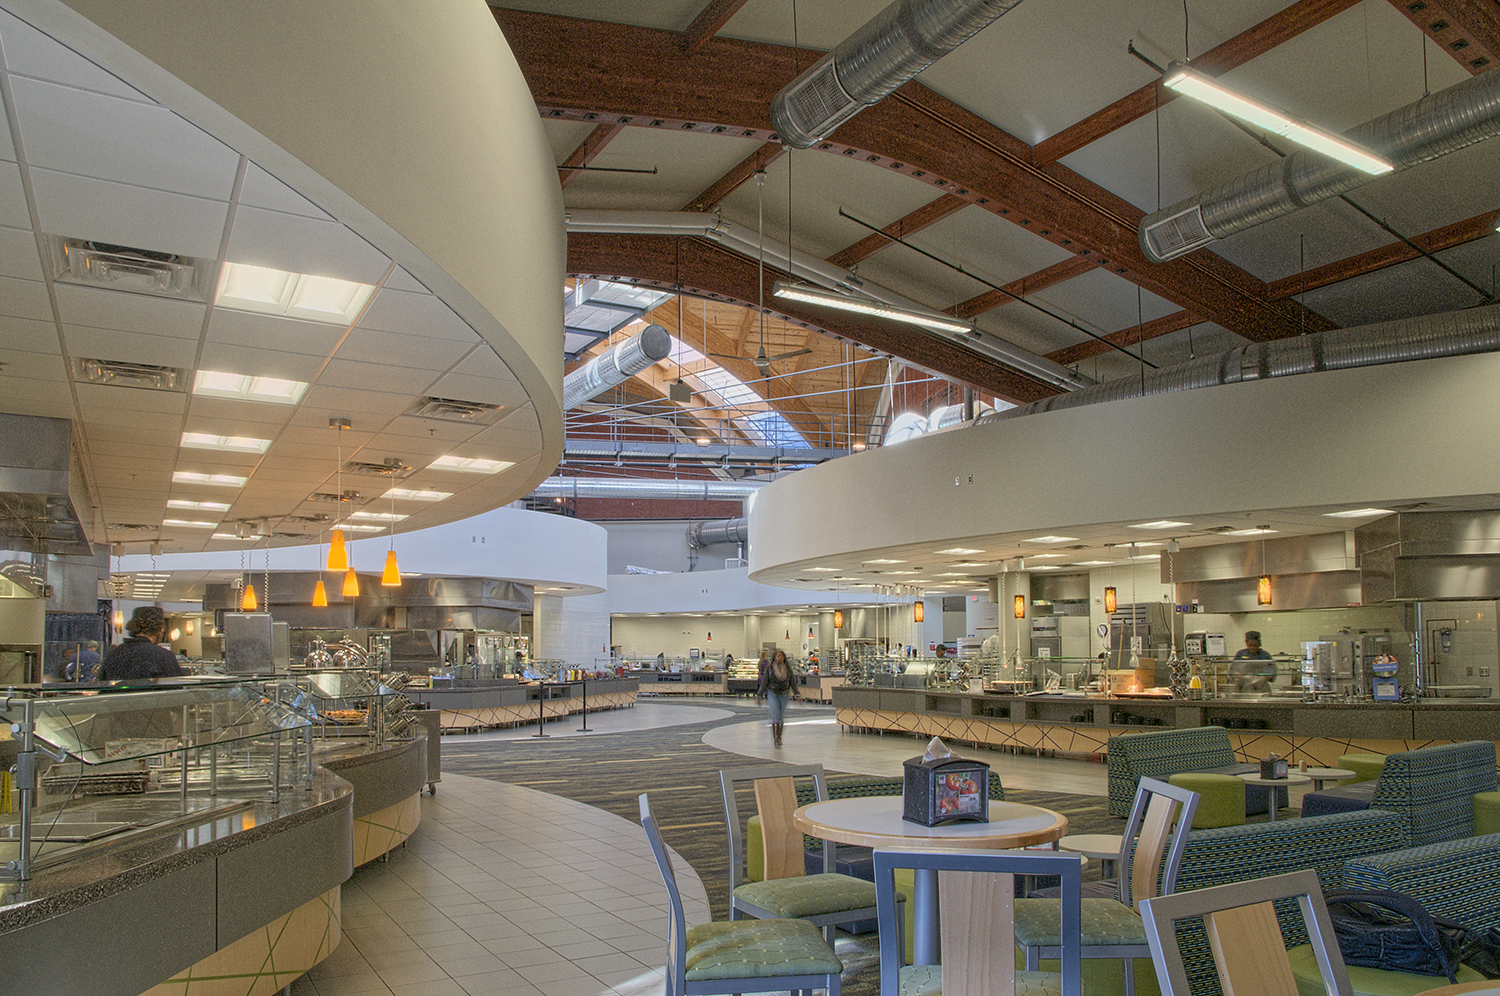 University of north carolina at greensboro rodgers builders for U of t dining hall